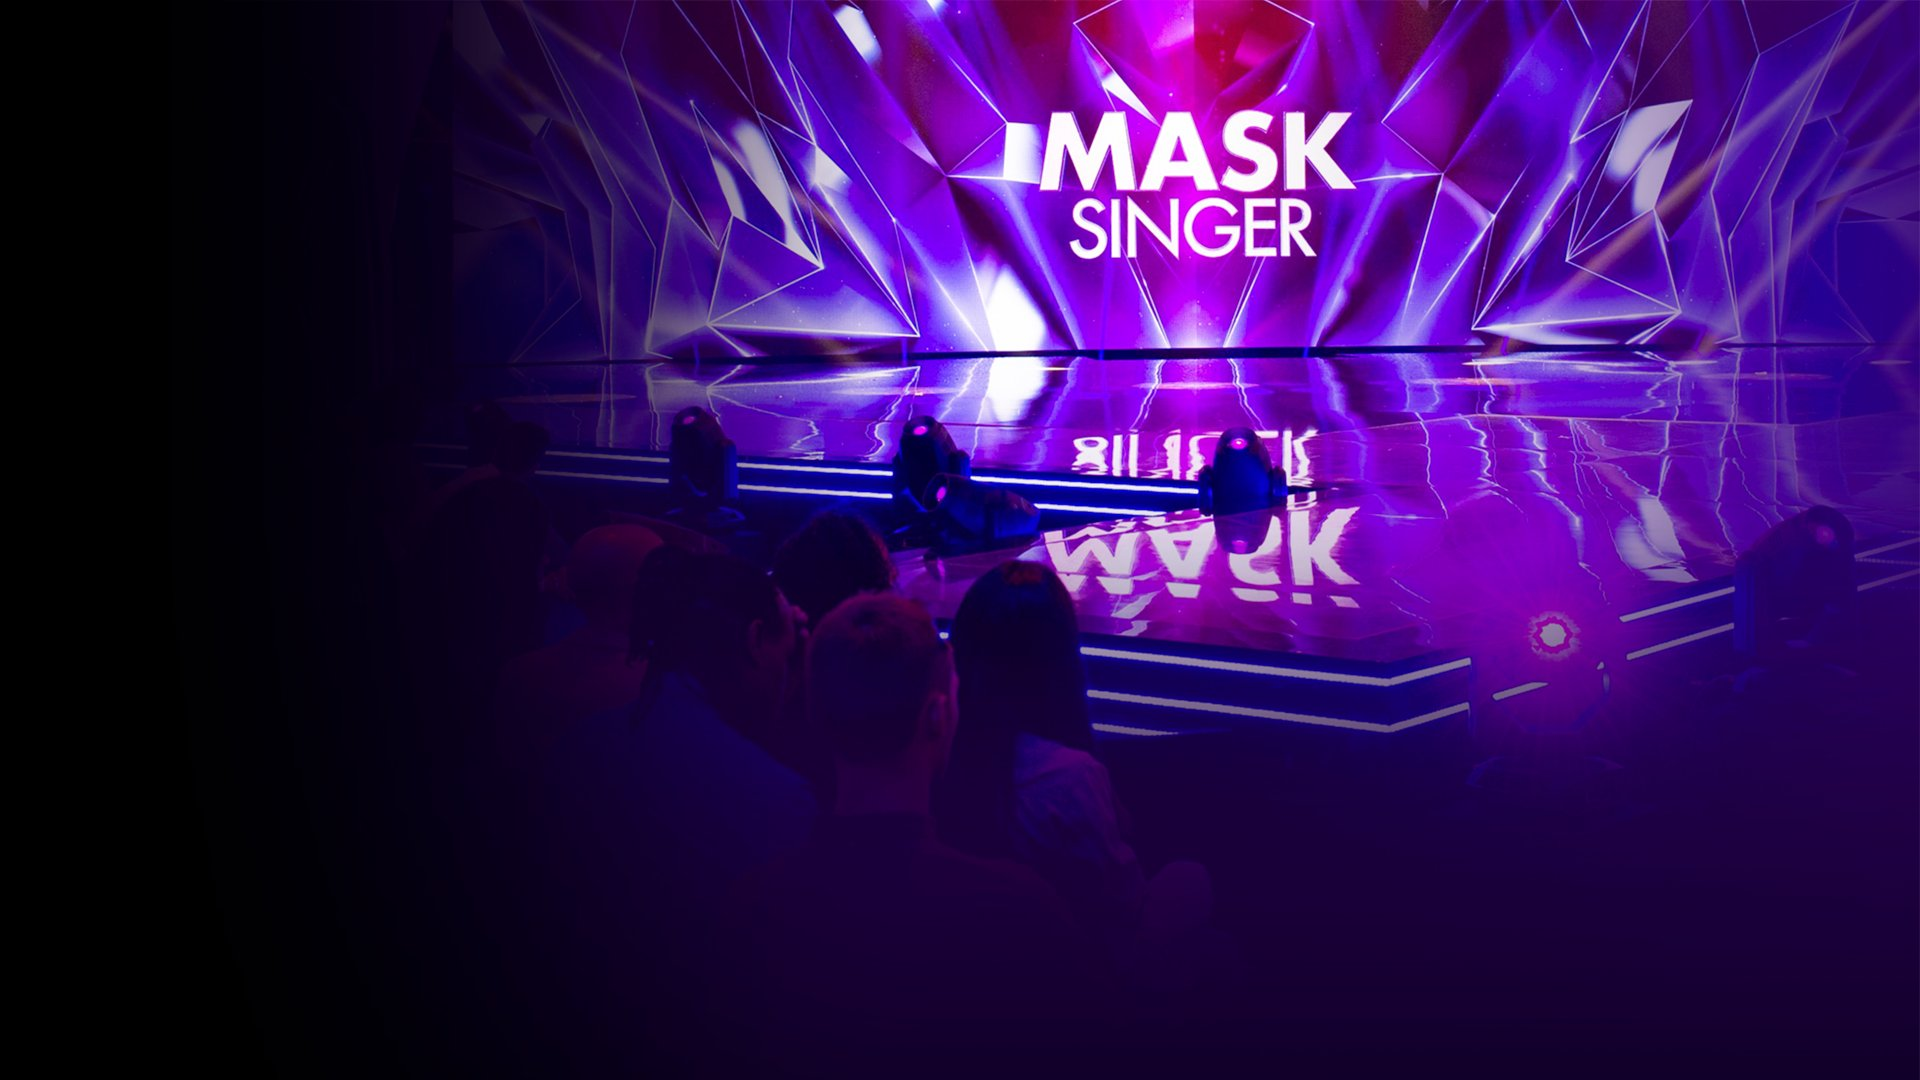 fond Mask Singer - Abeille chante « It's oh so quiet » de Björk